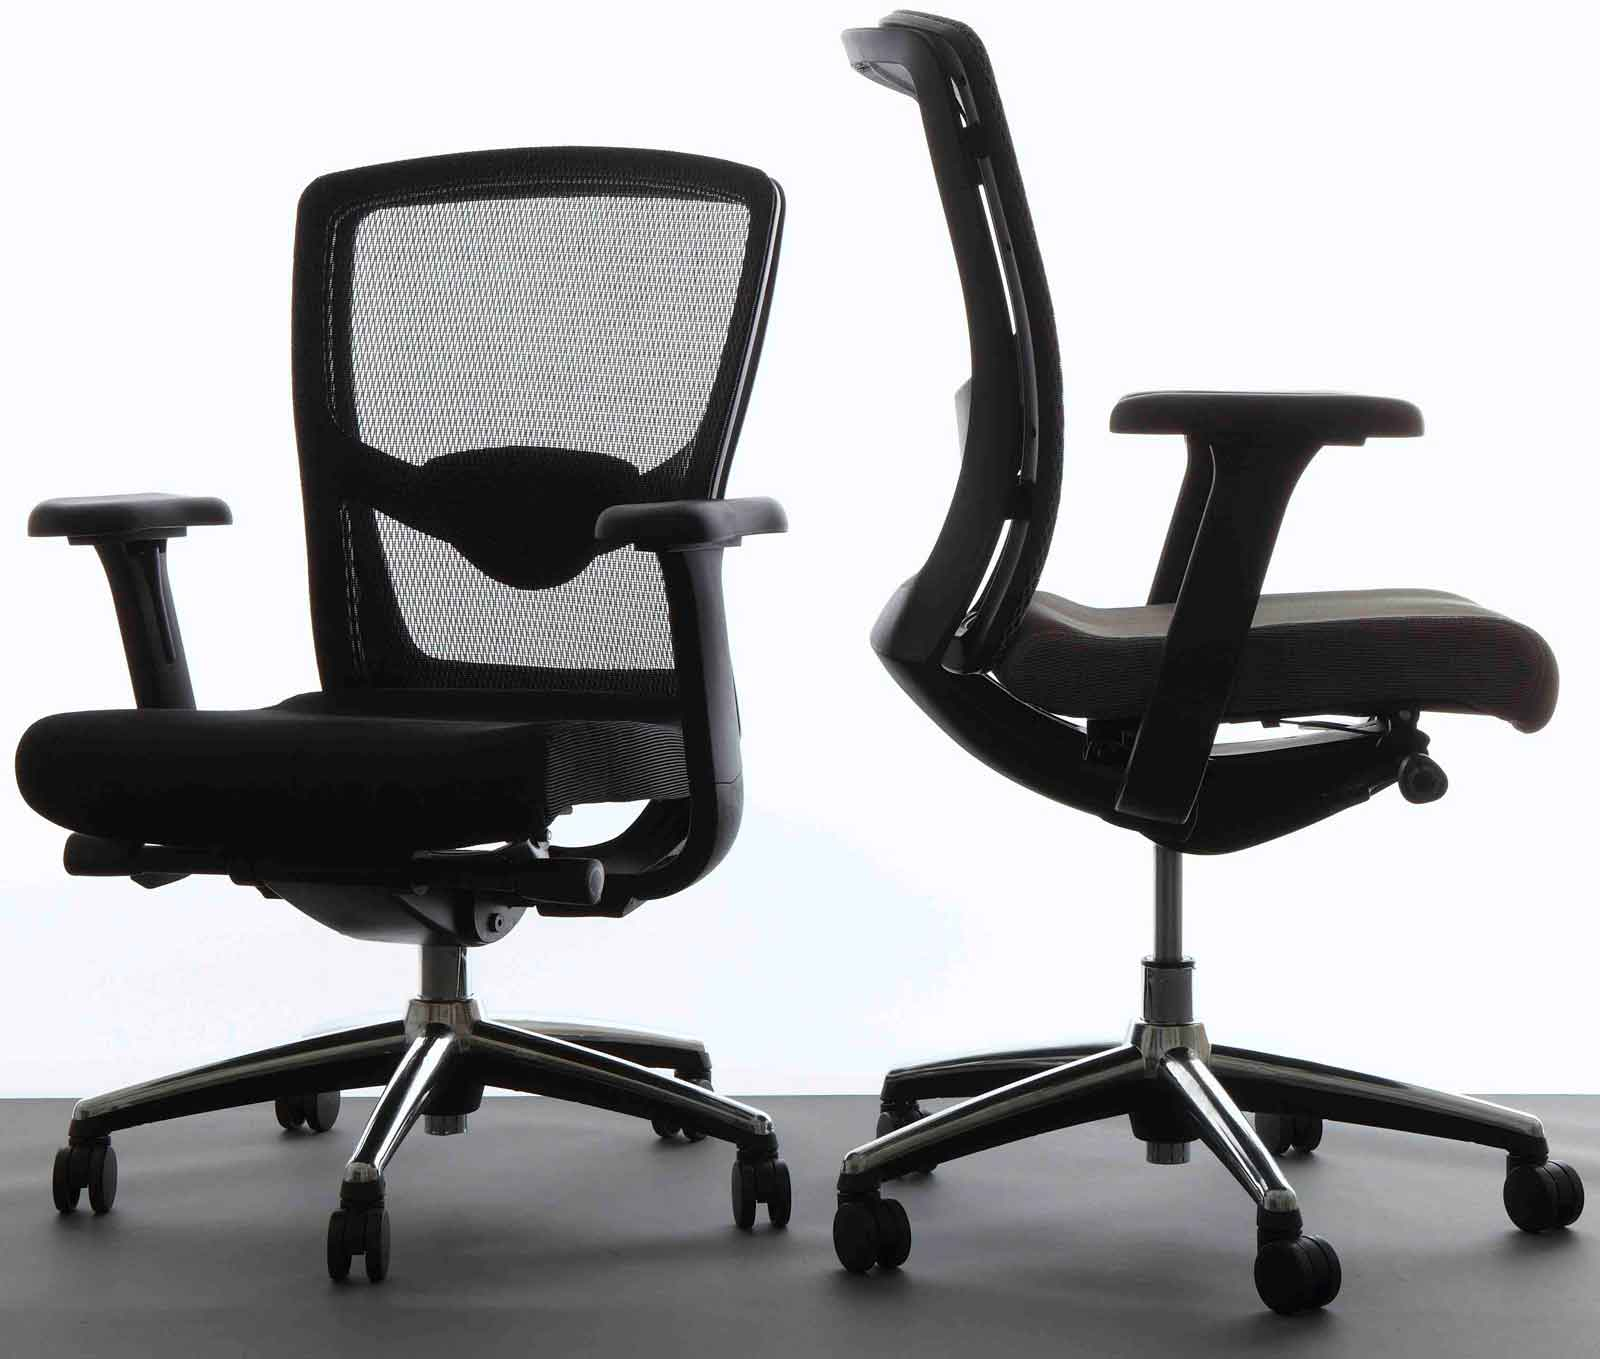 office chairs for bad backs reviews lounge chair covers brisbane ergonomic desk and home